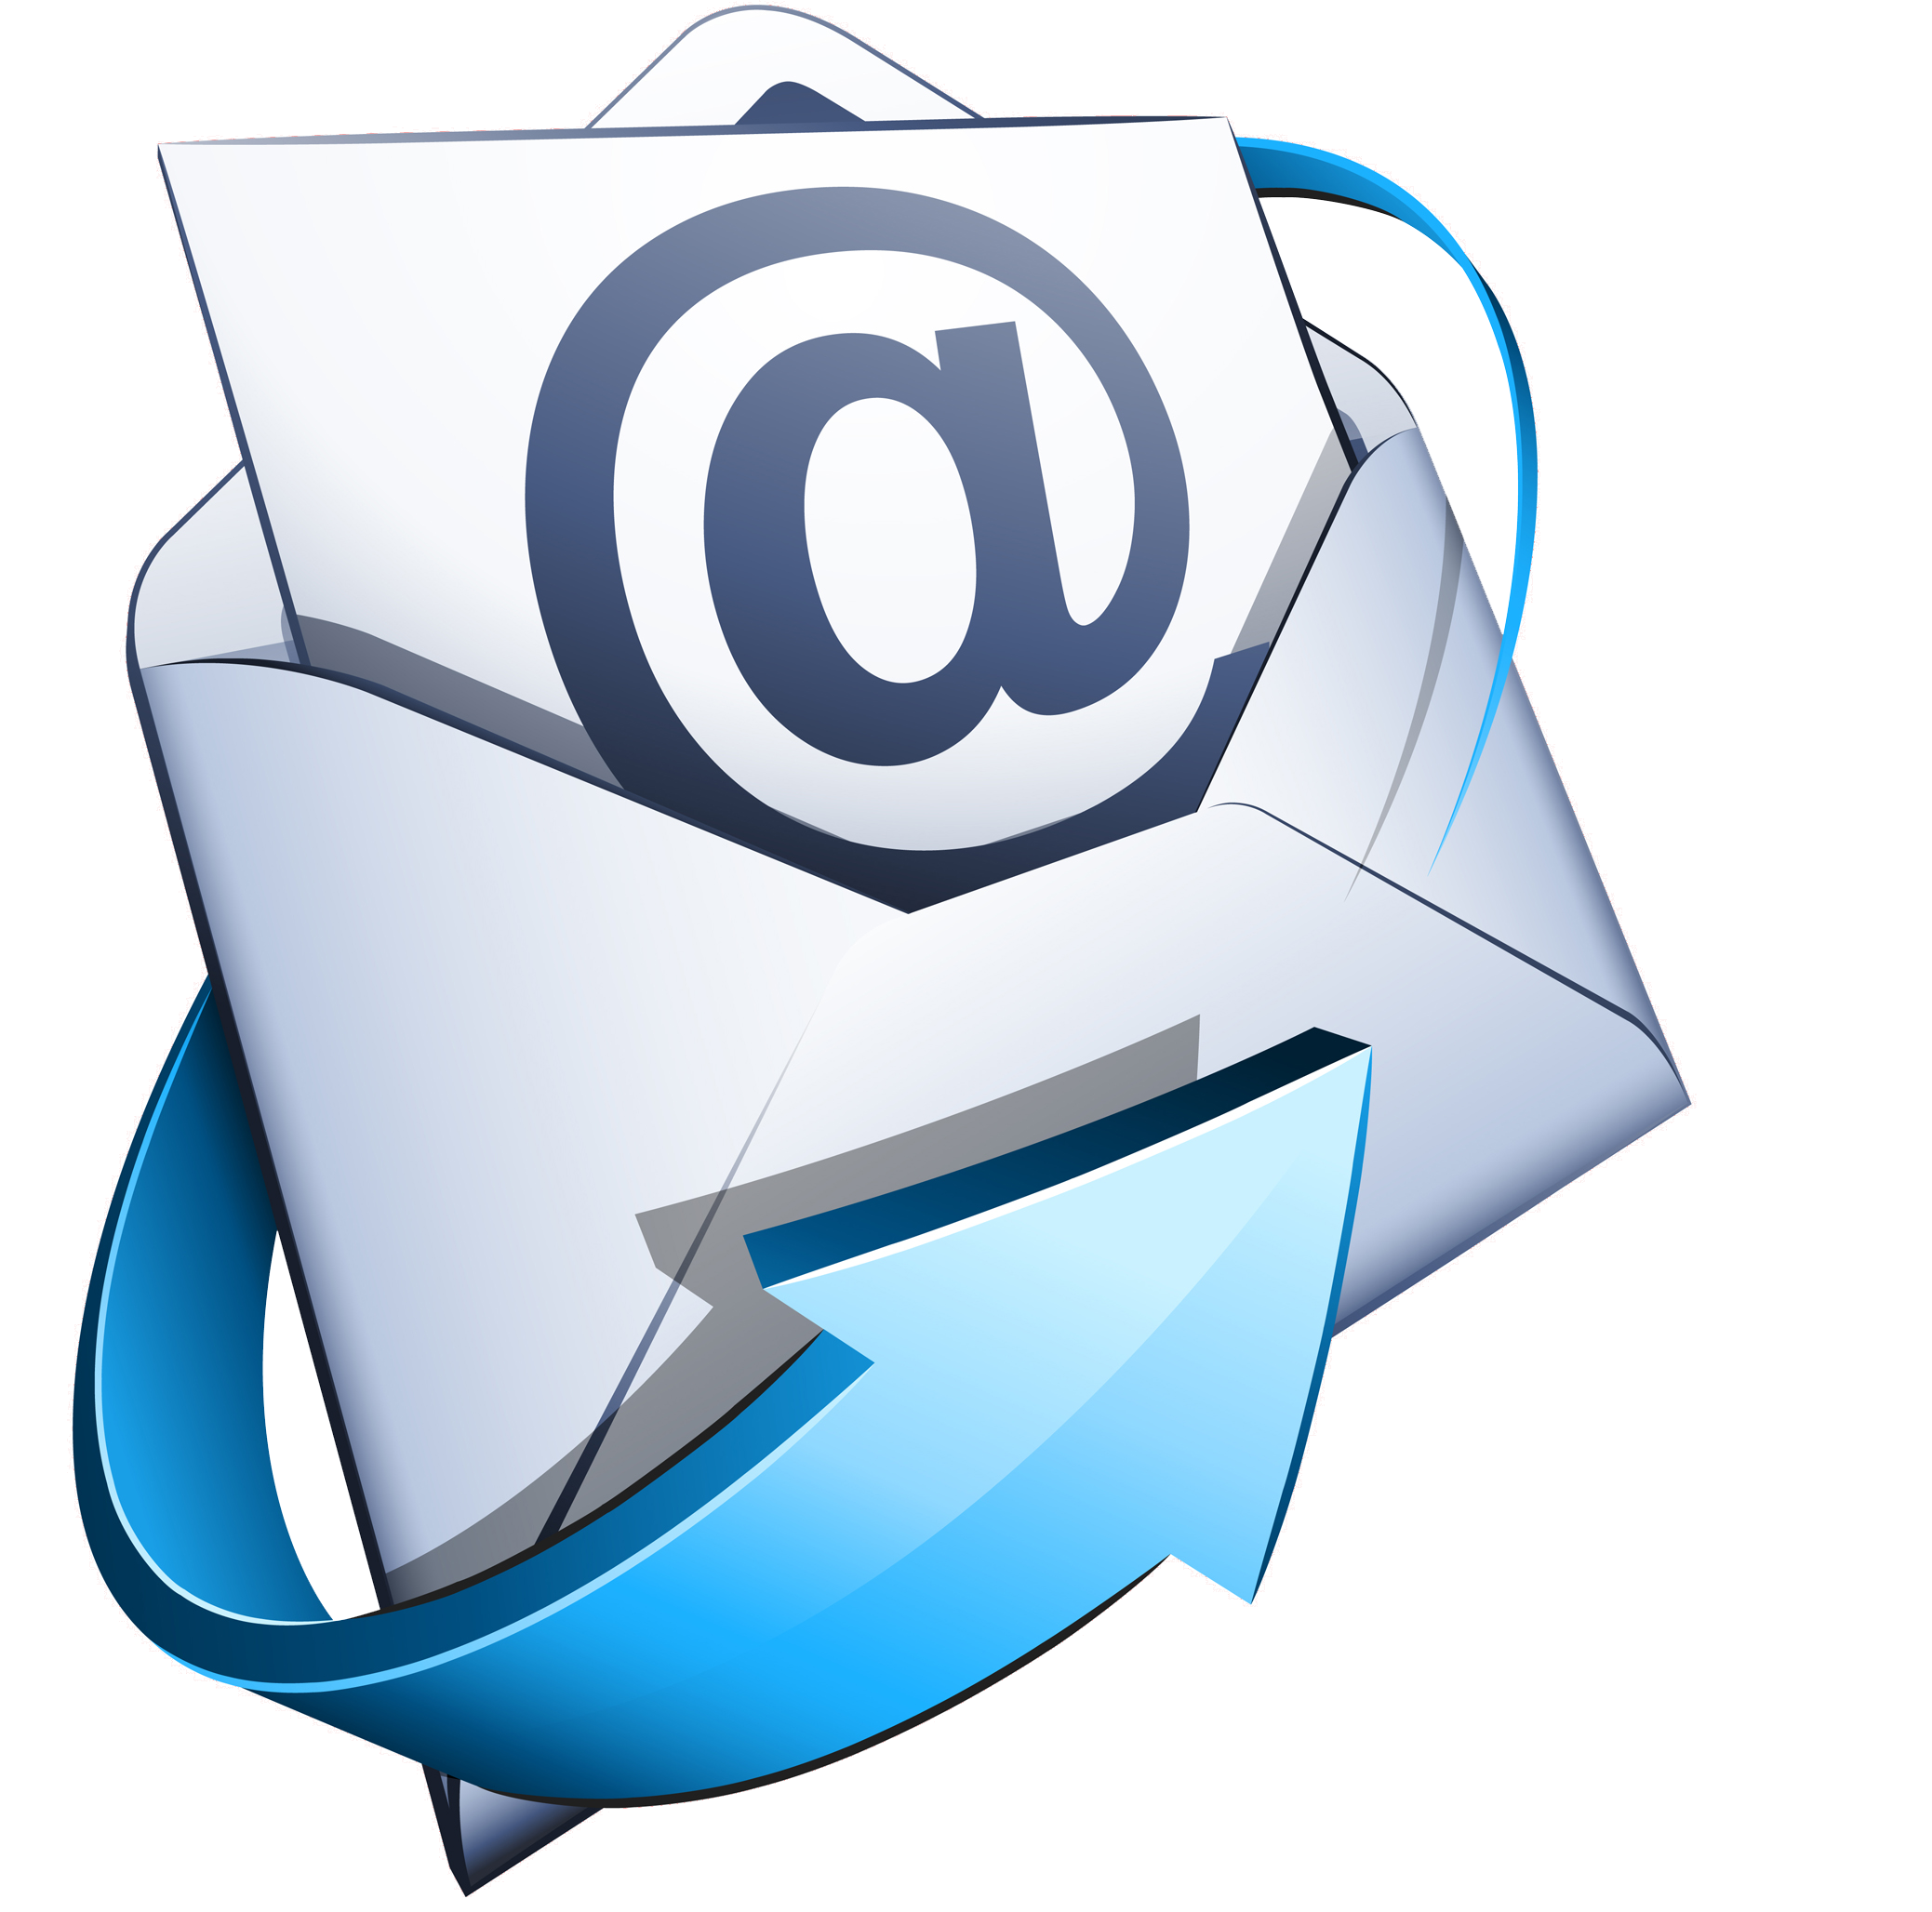 Email image png. Marketing transparent icon all